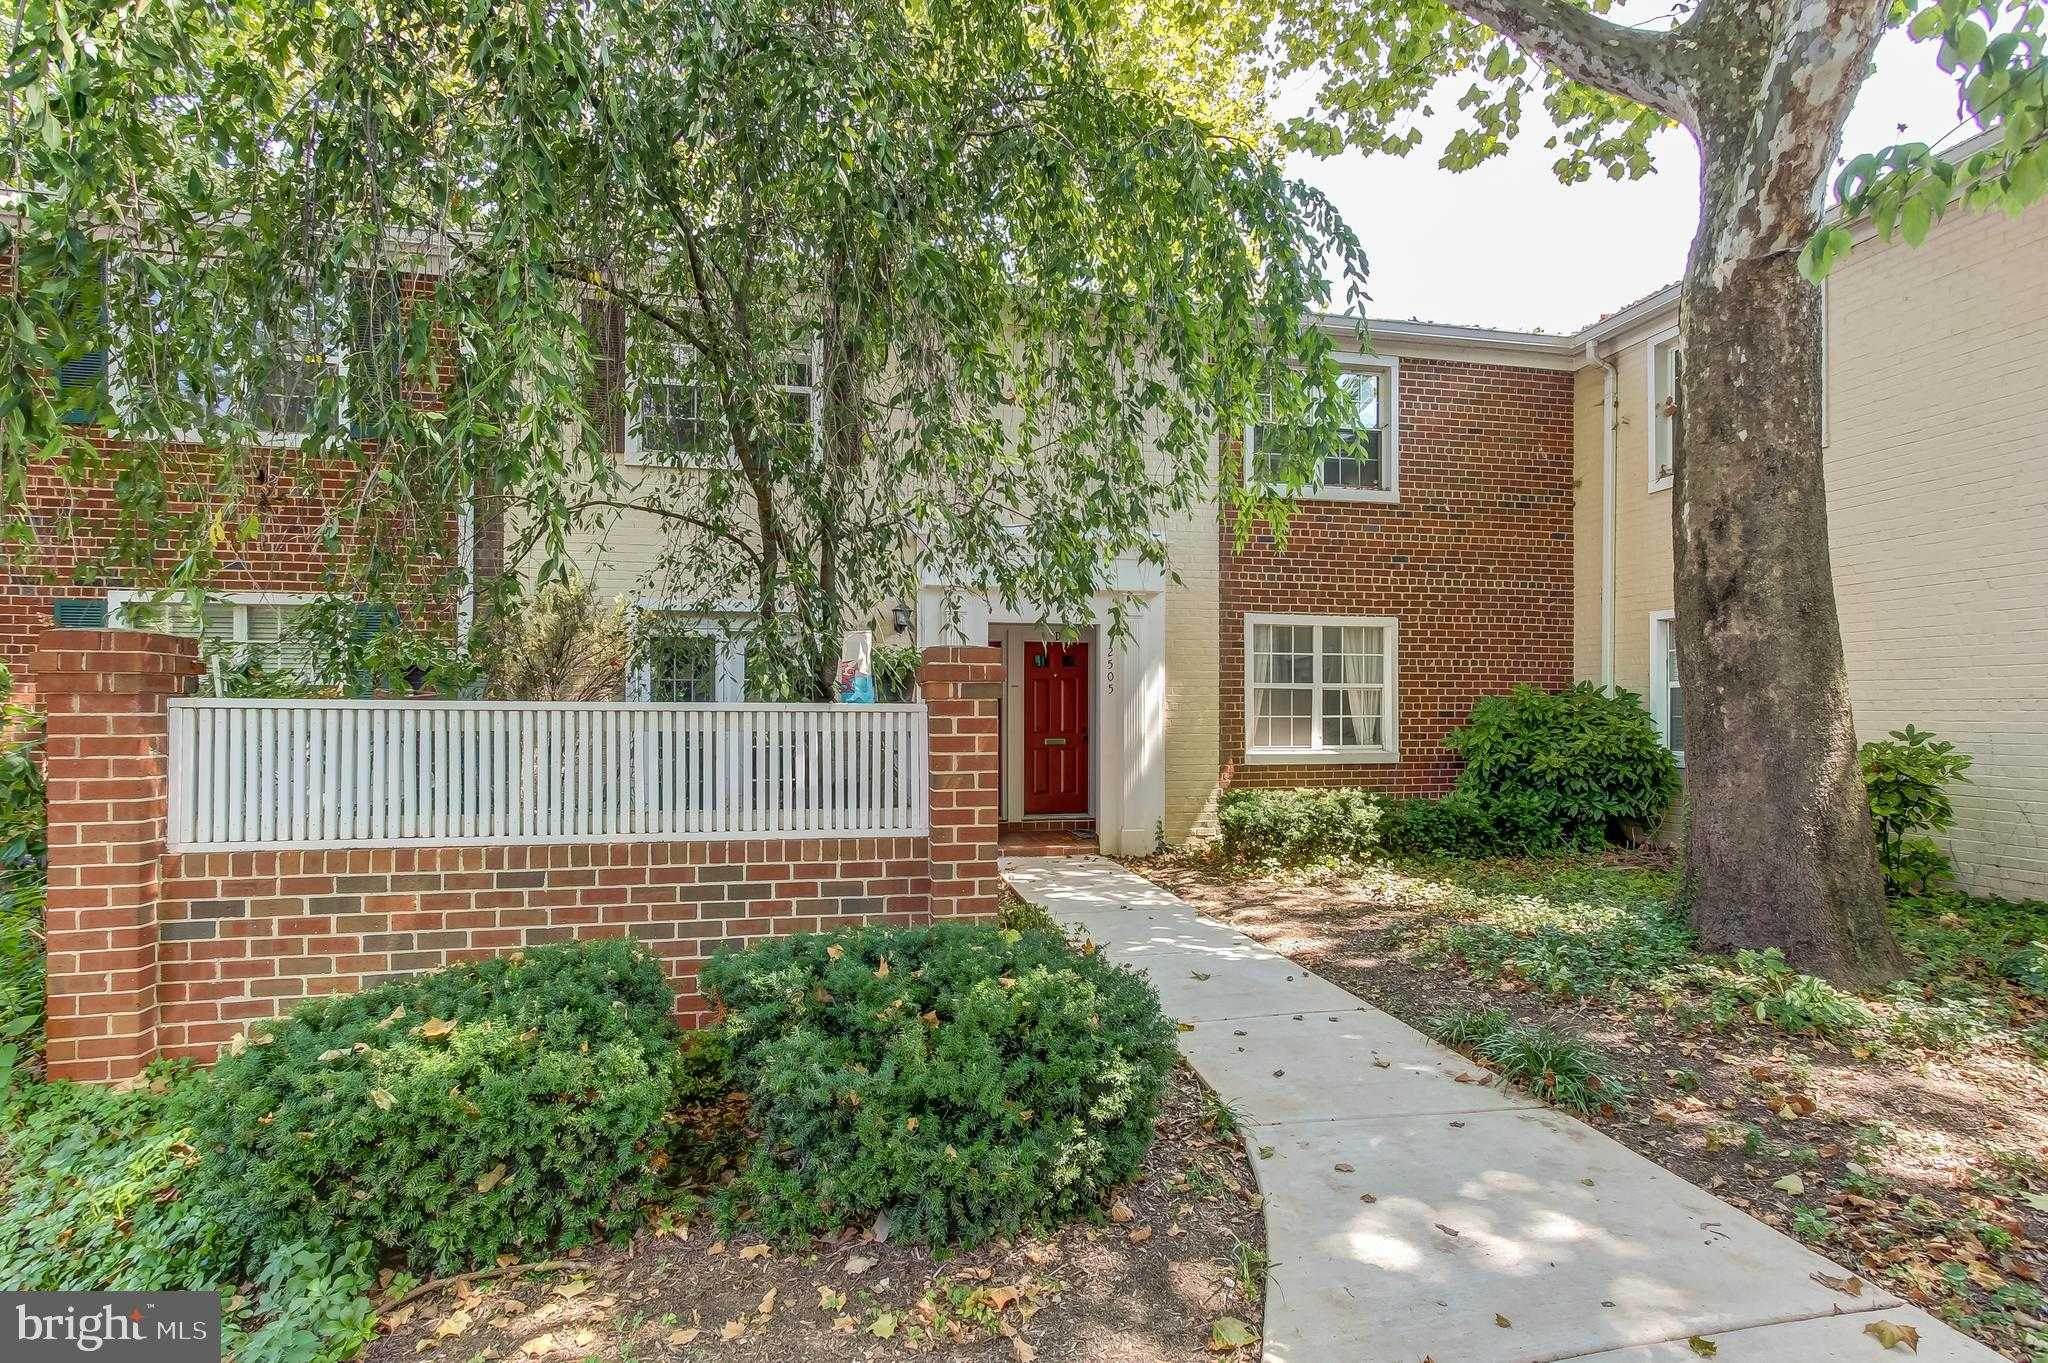 $433,900 - 3Br/2Ba -  for Sale in The Arlington, Arlington